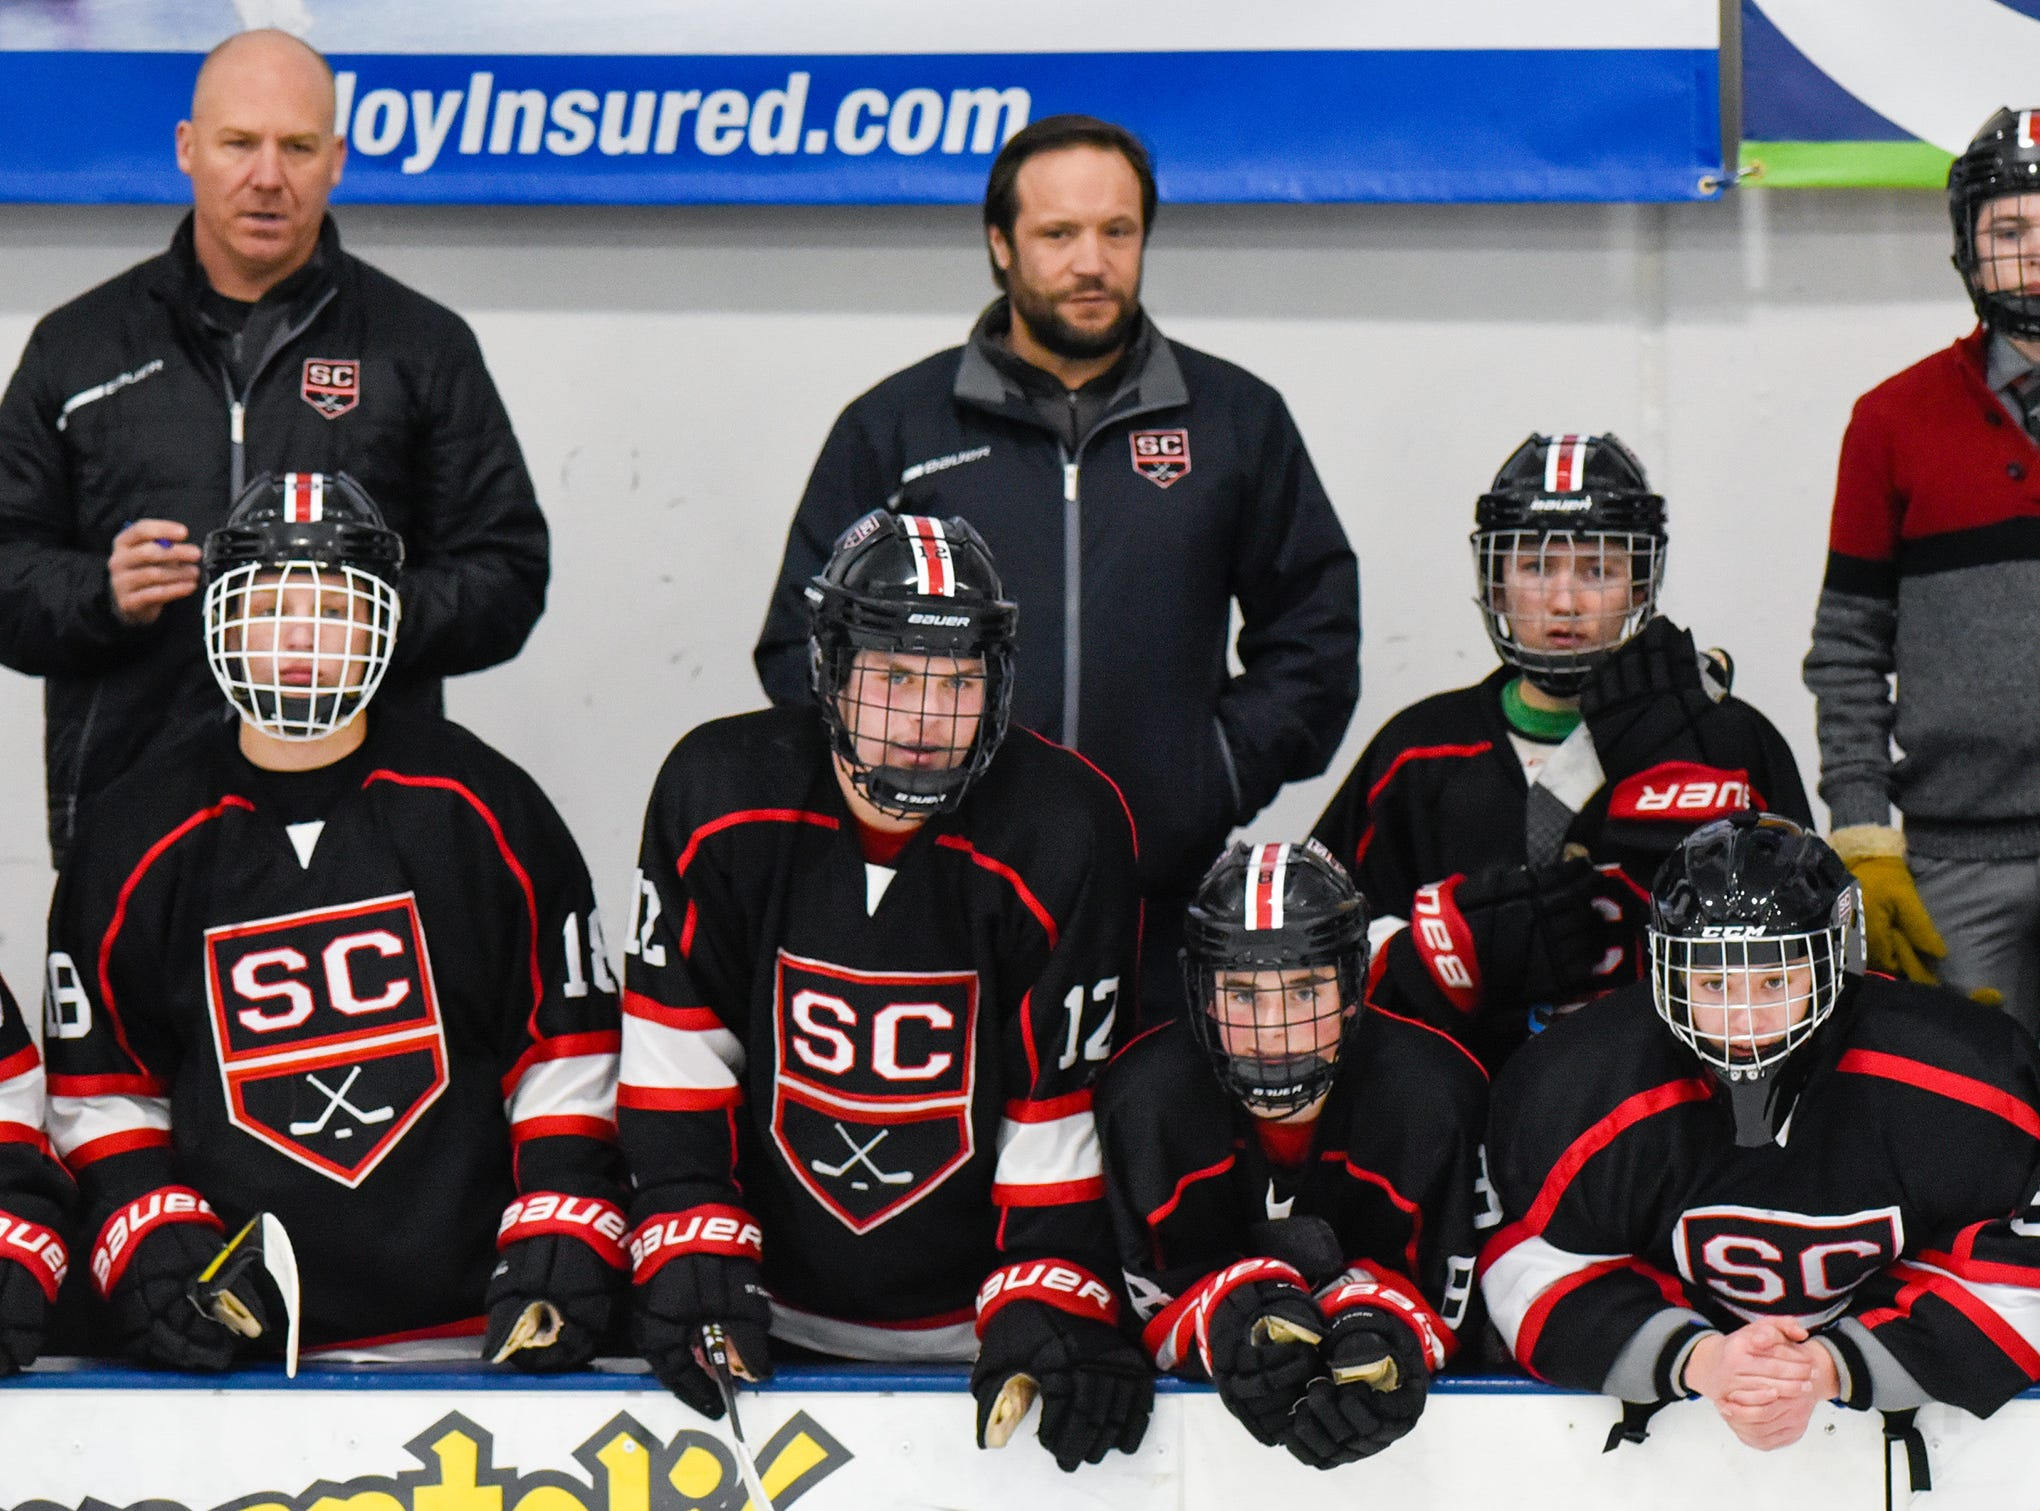 St. Cloud players and coaches watch the action from the bench during the first period Tuesday, Dec. 18, at the Bernick's Arena in Sartell.